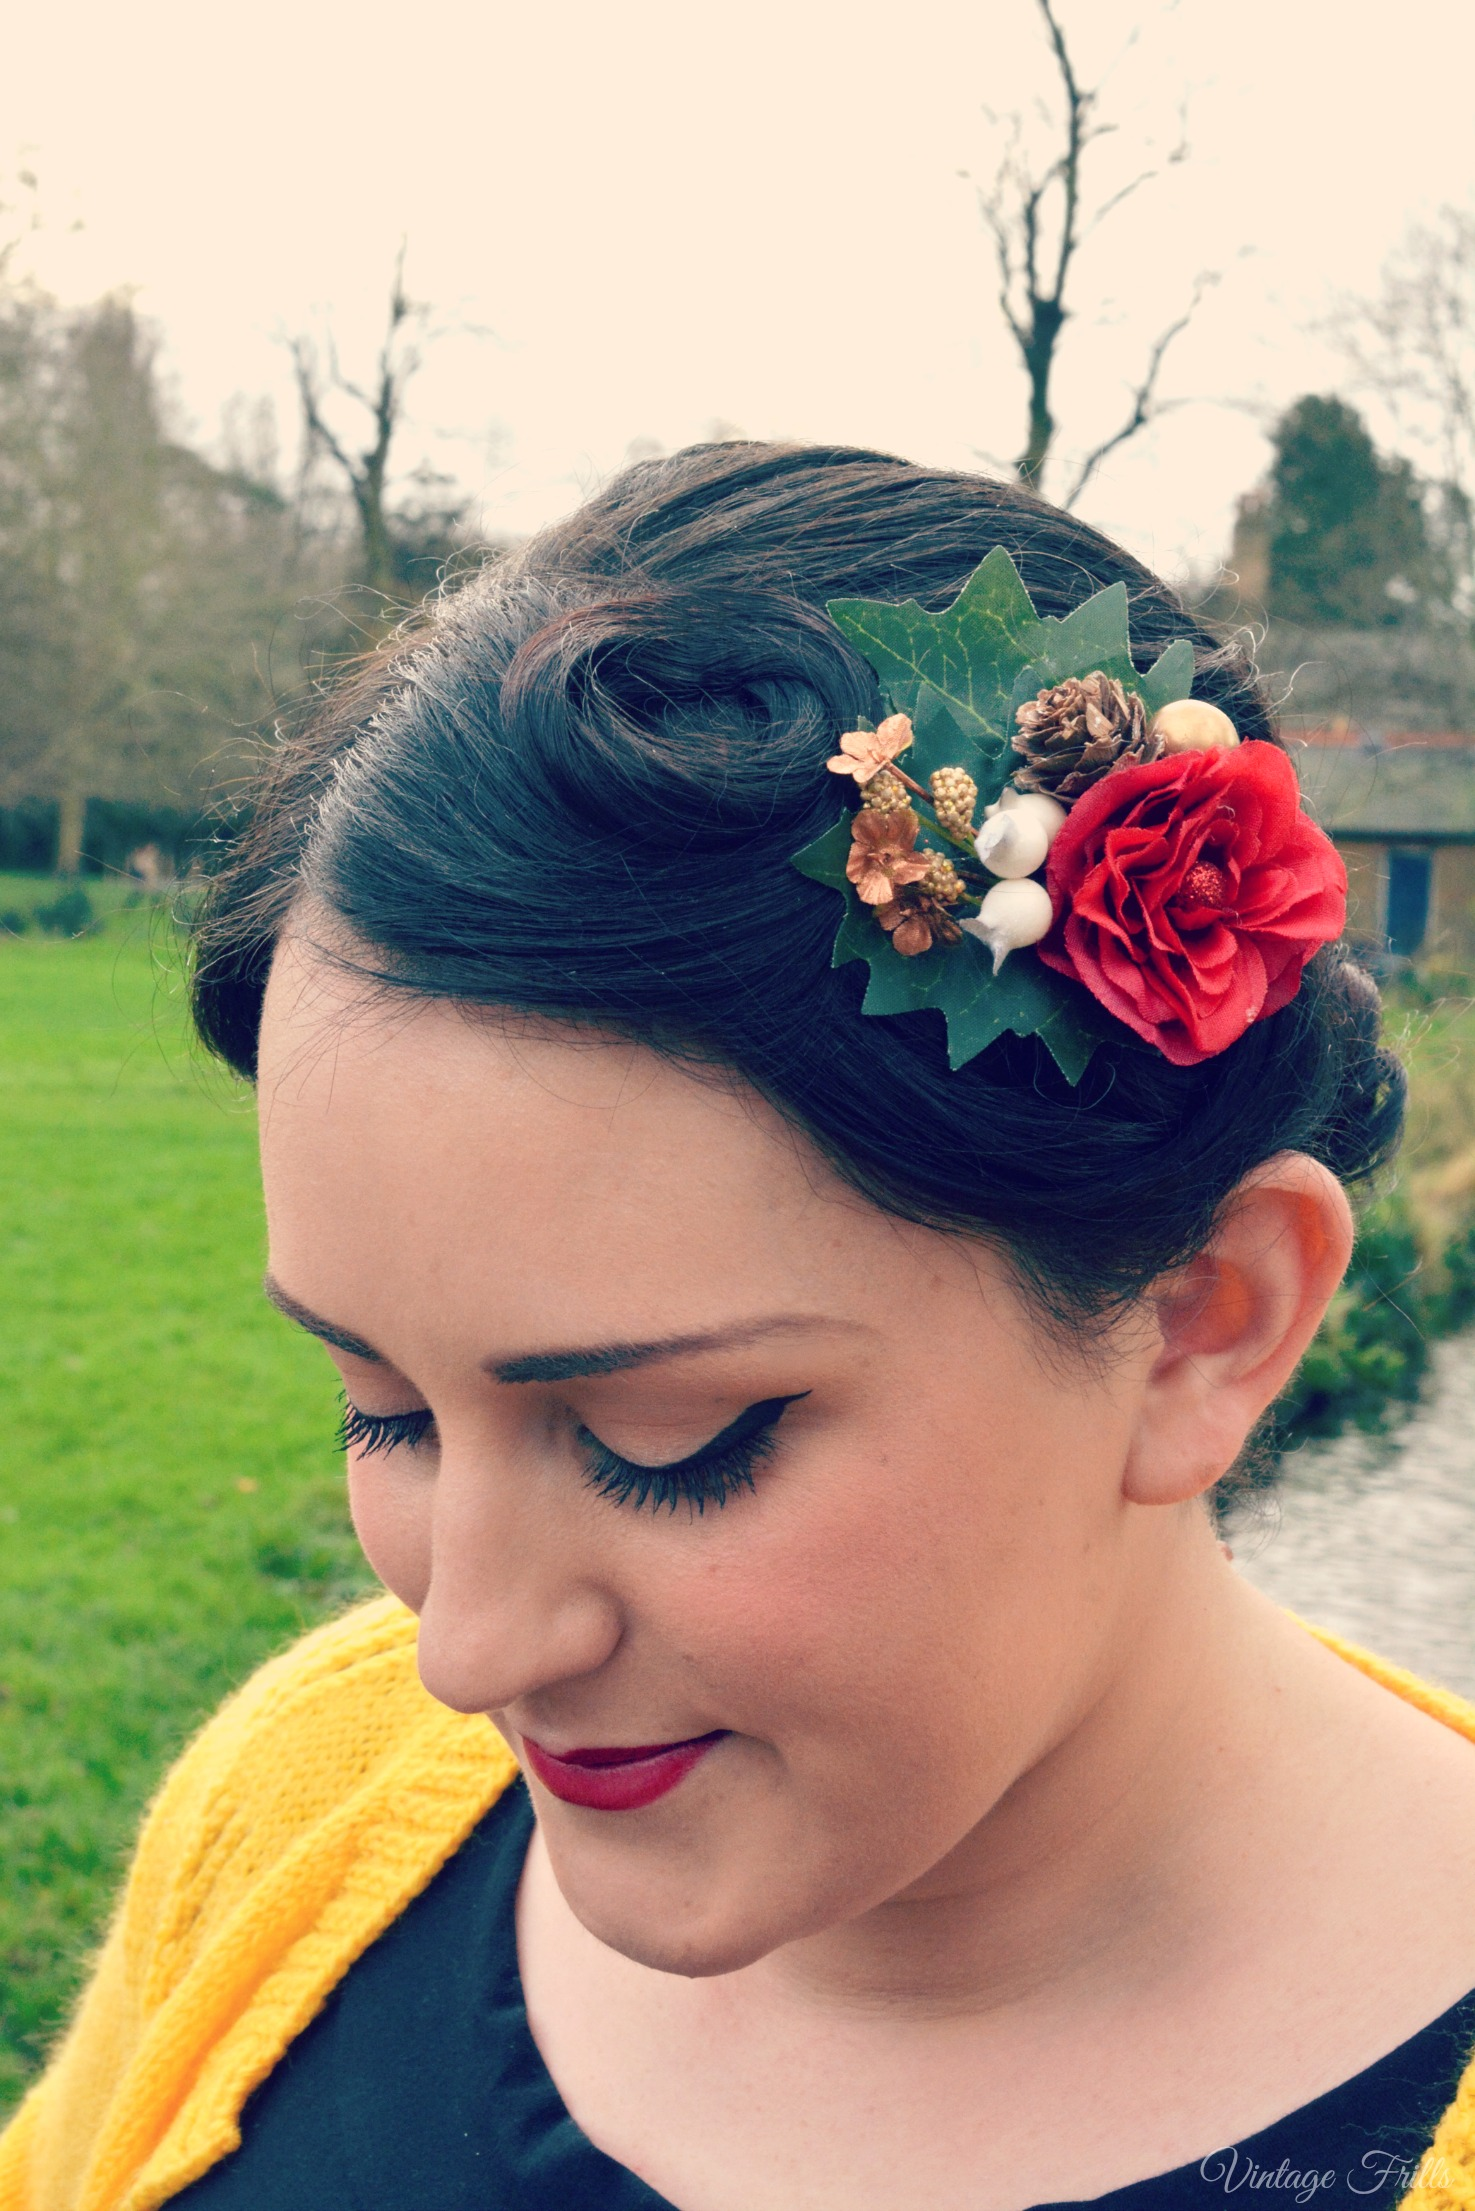 Vintage Frills Rosie Alia Designs Christmas Hair Flower